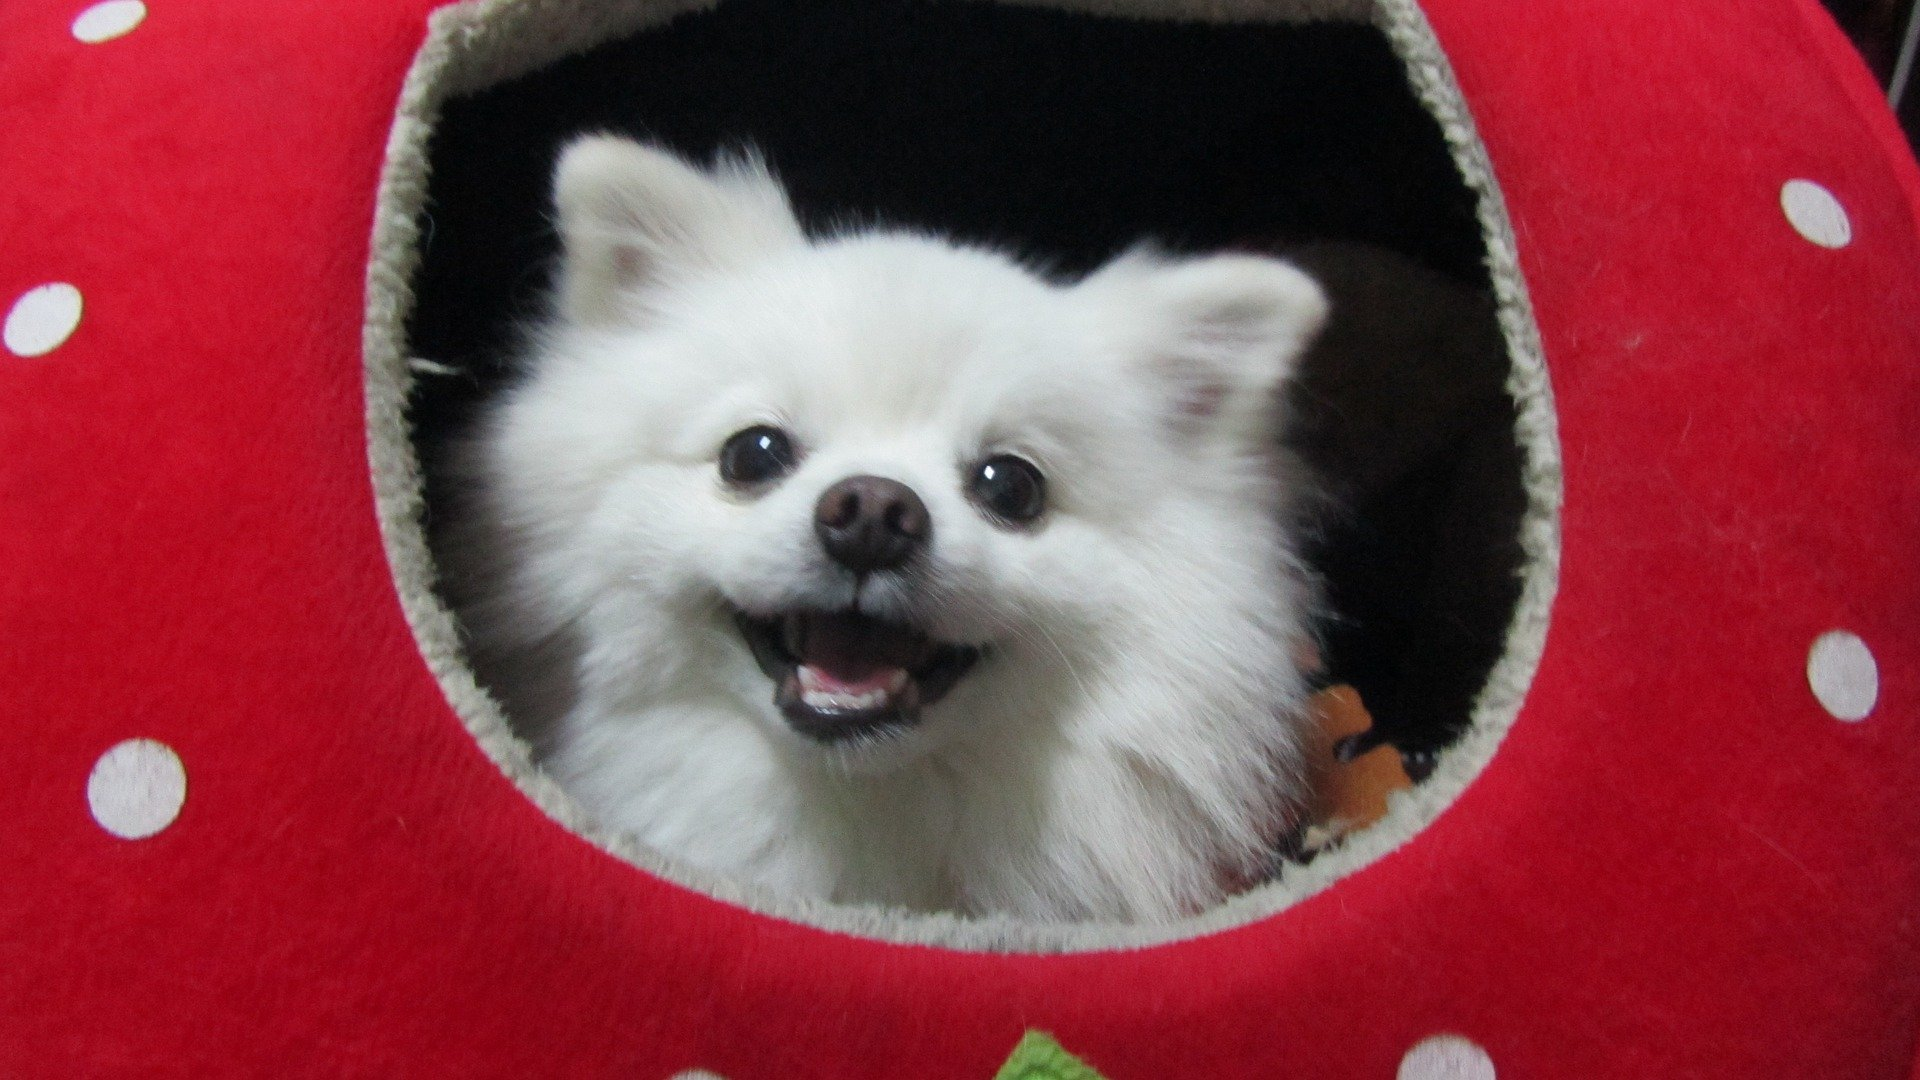 Cute dogs: Why are dogs so cute? Let's find out!